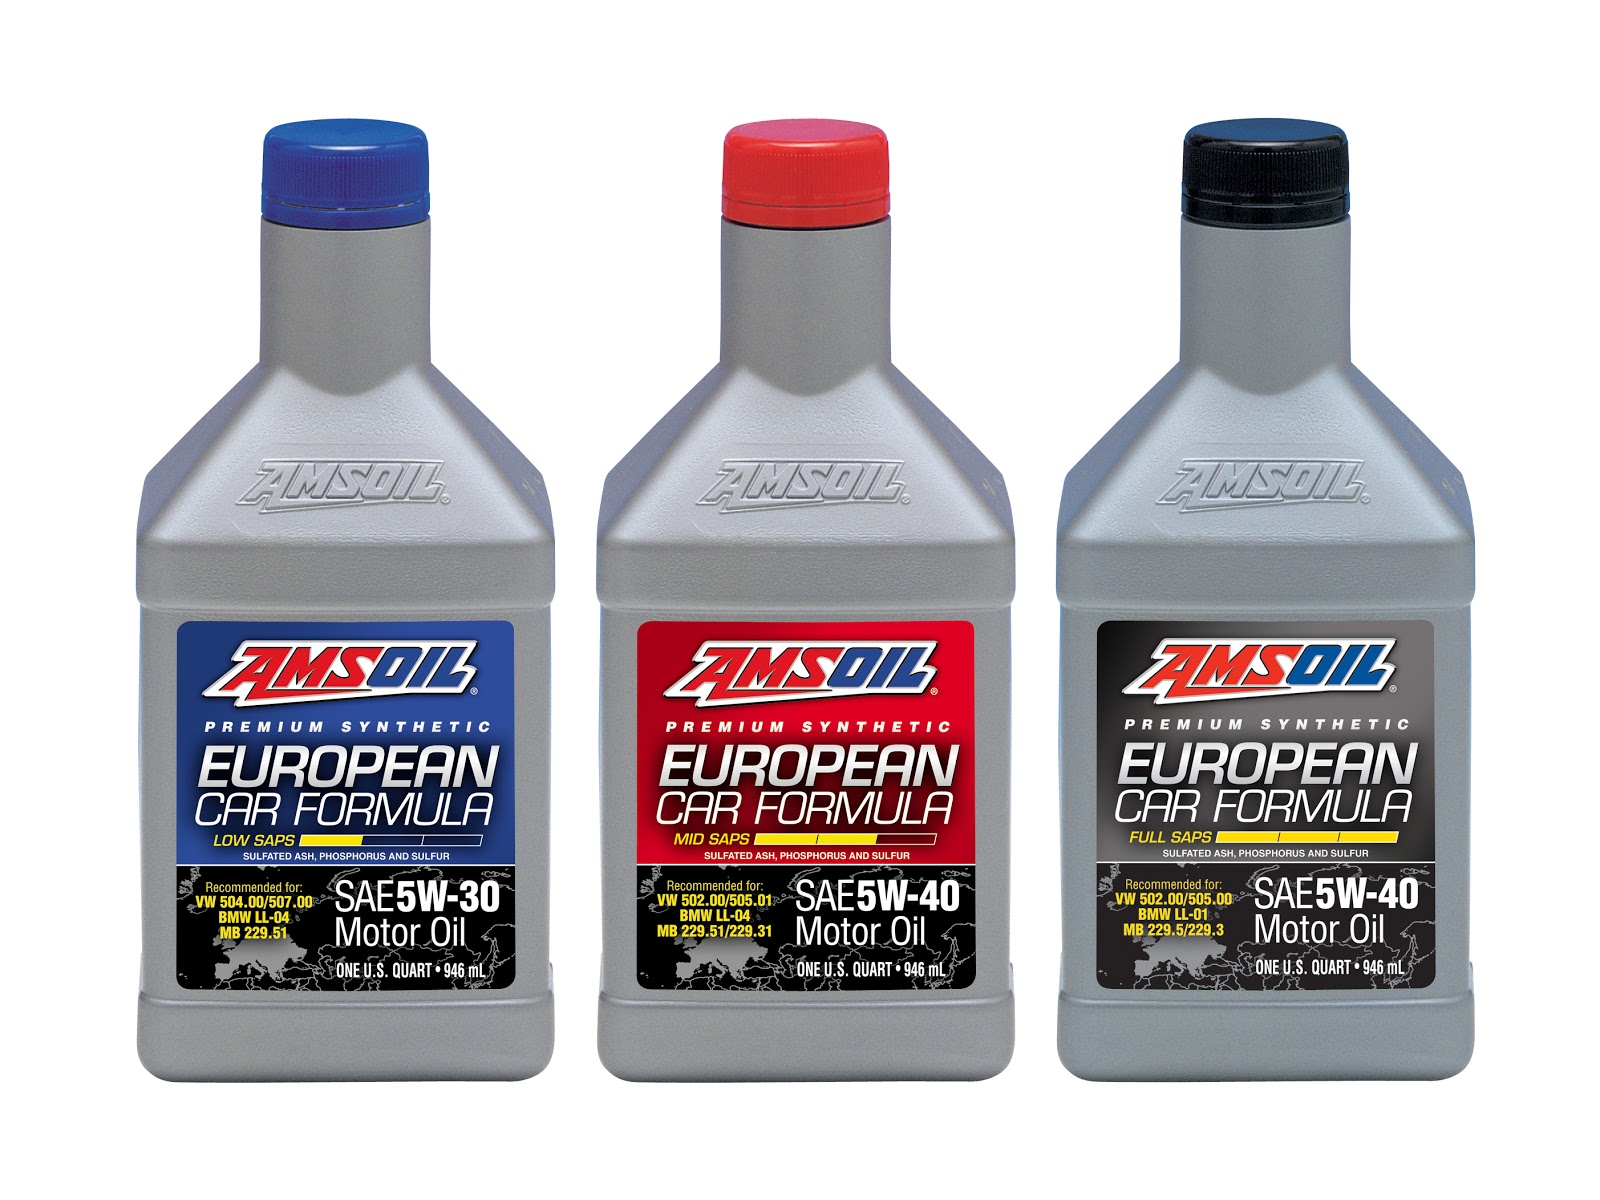 New 5w 40 Full Saps Synthetic Motor Oil Completes European